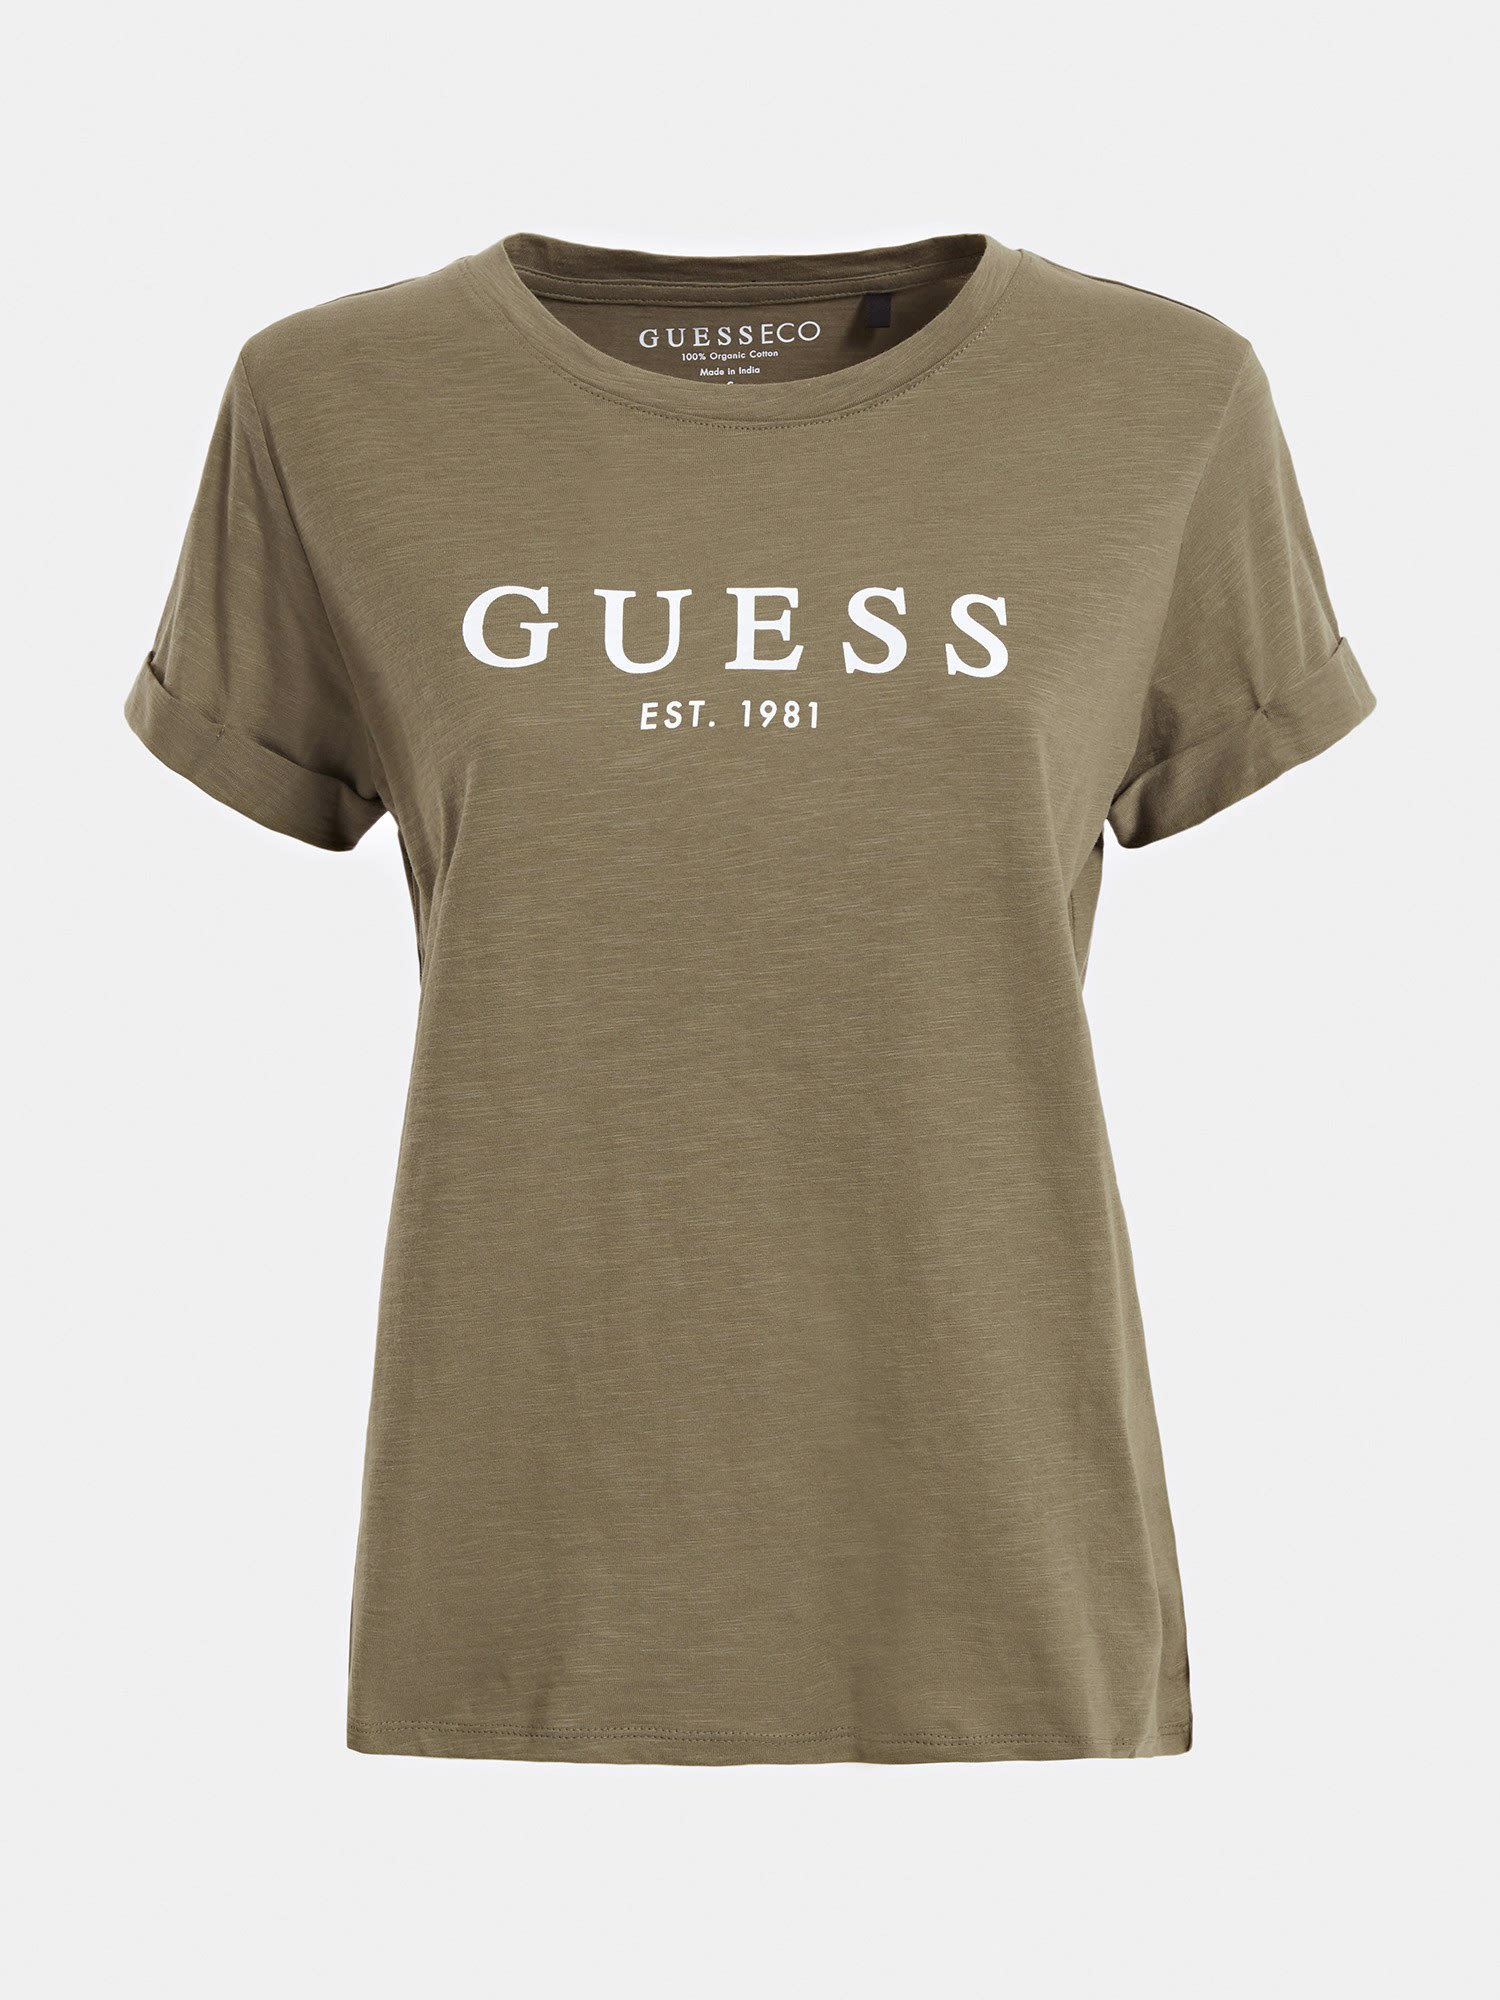 Guess ES SS GUESS 1981 ROLL CUFF TEE